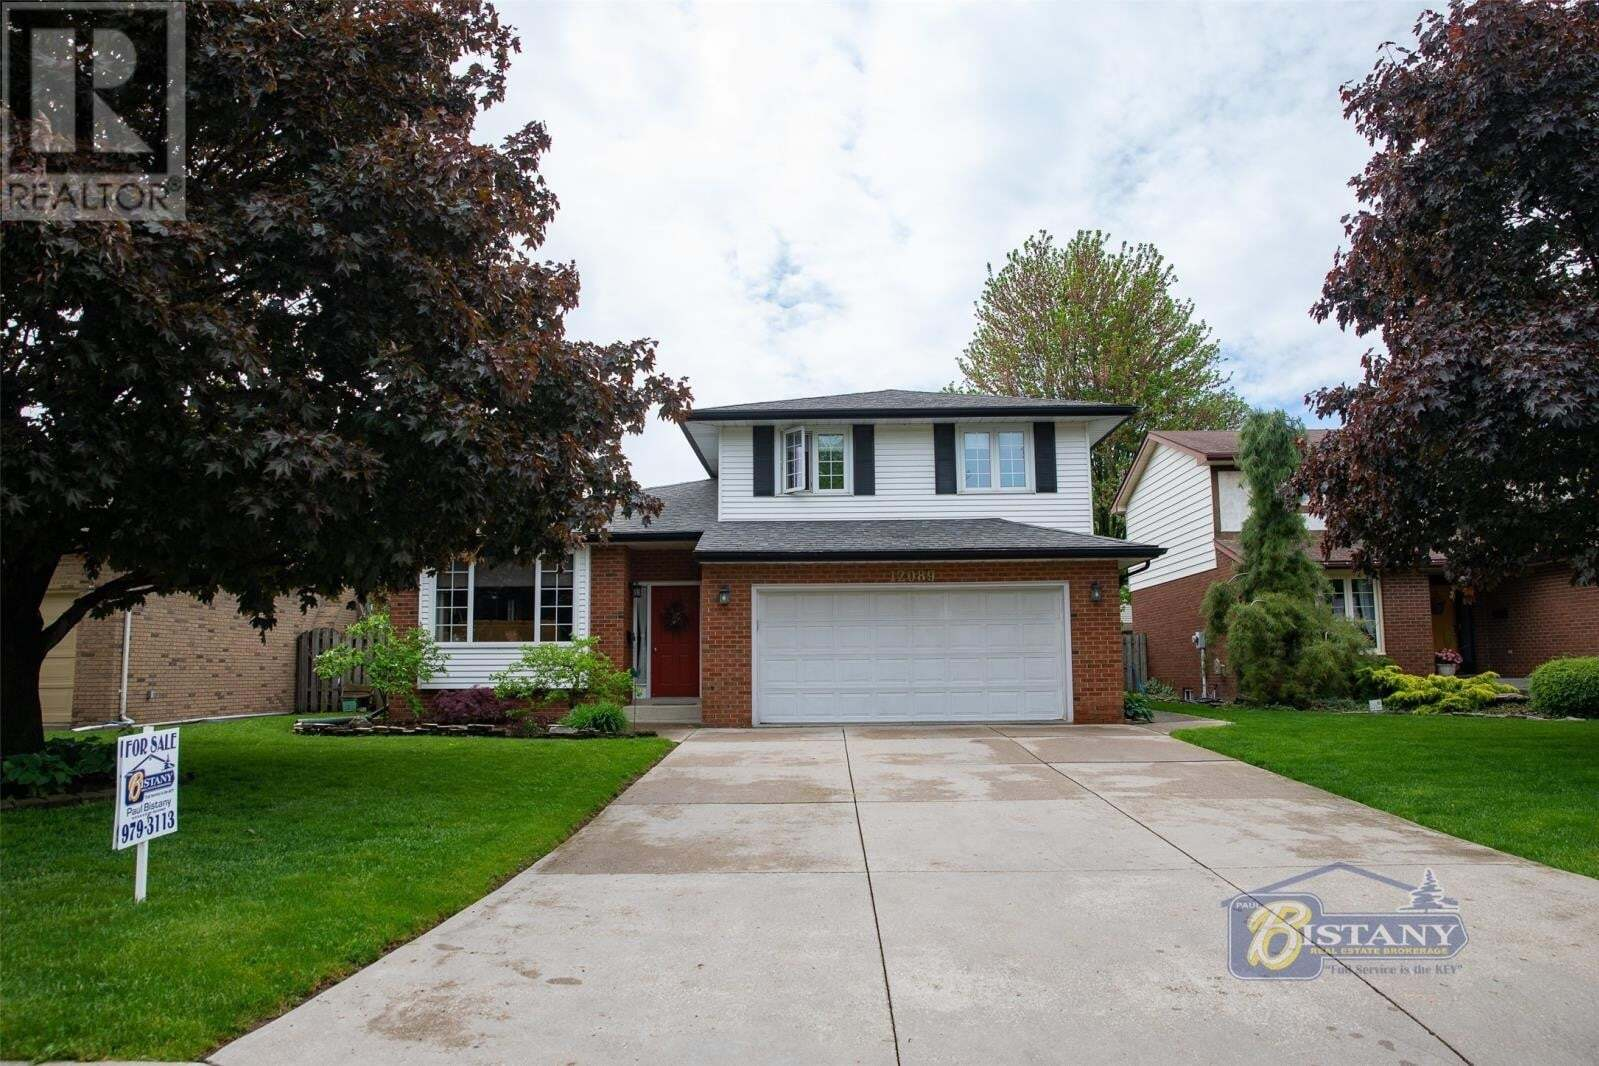 House for sale at 12089 Appletree Cres Tecumseh Ontario - MLS: 20005997